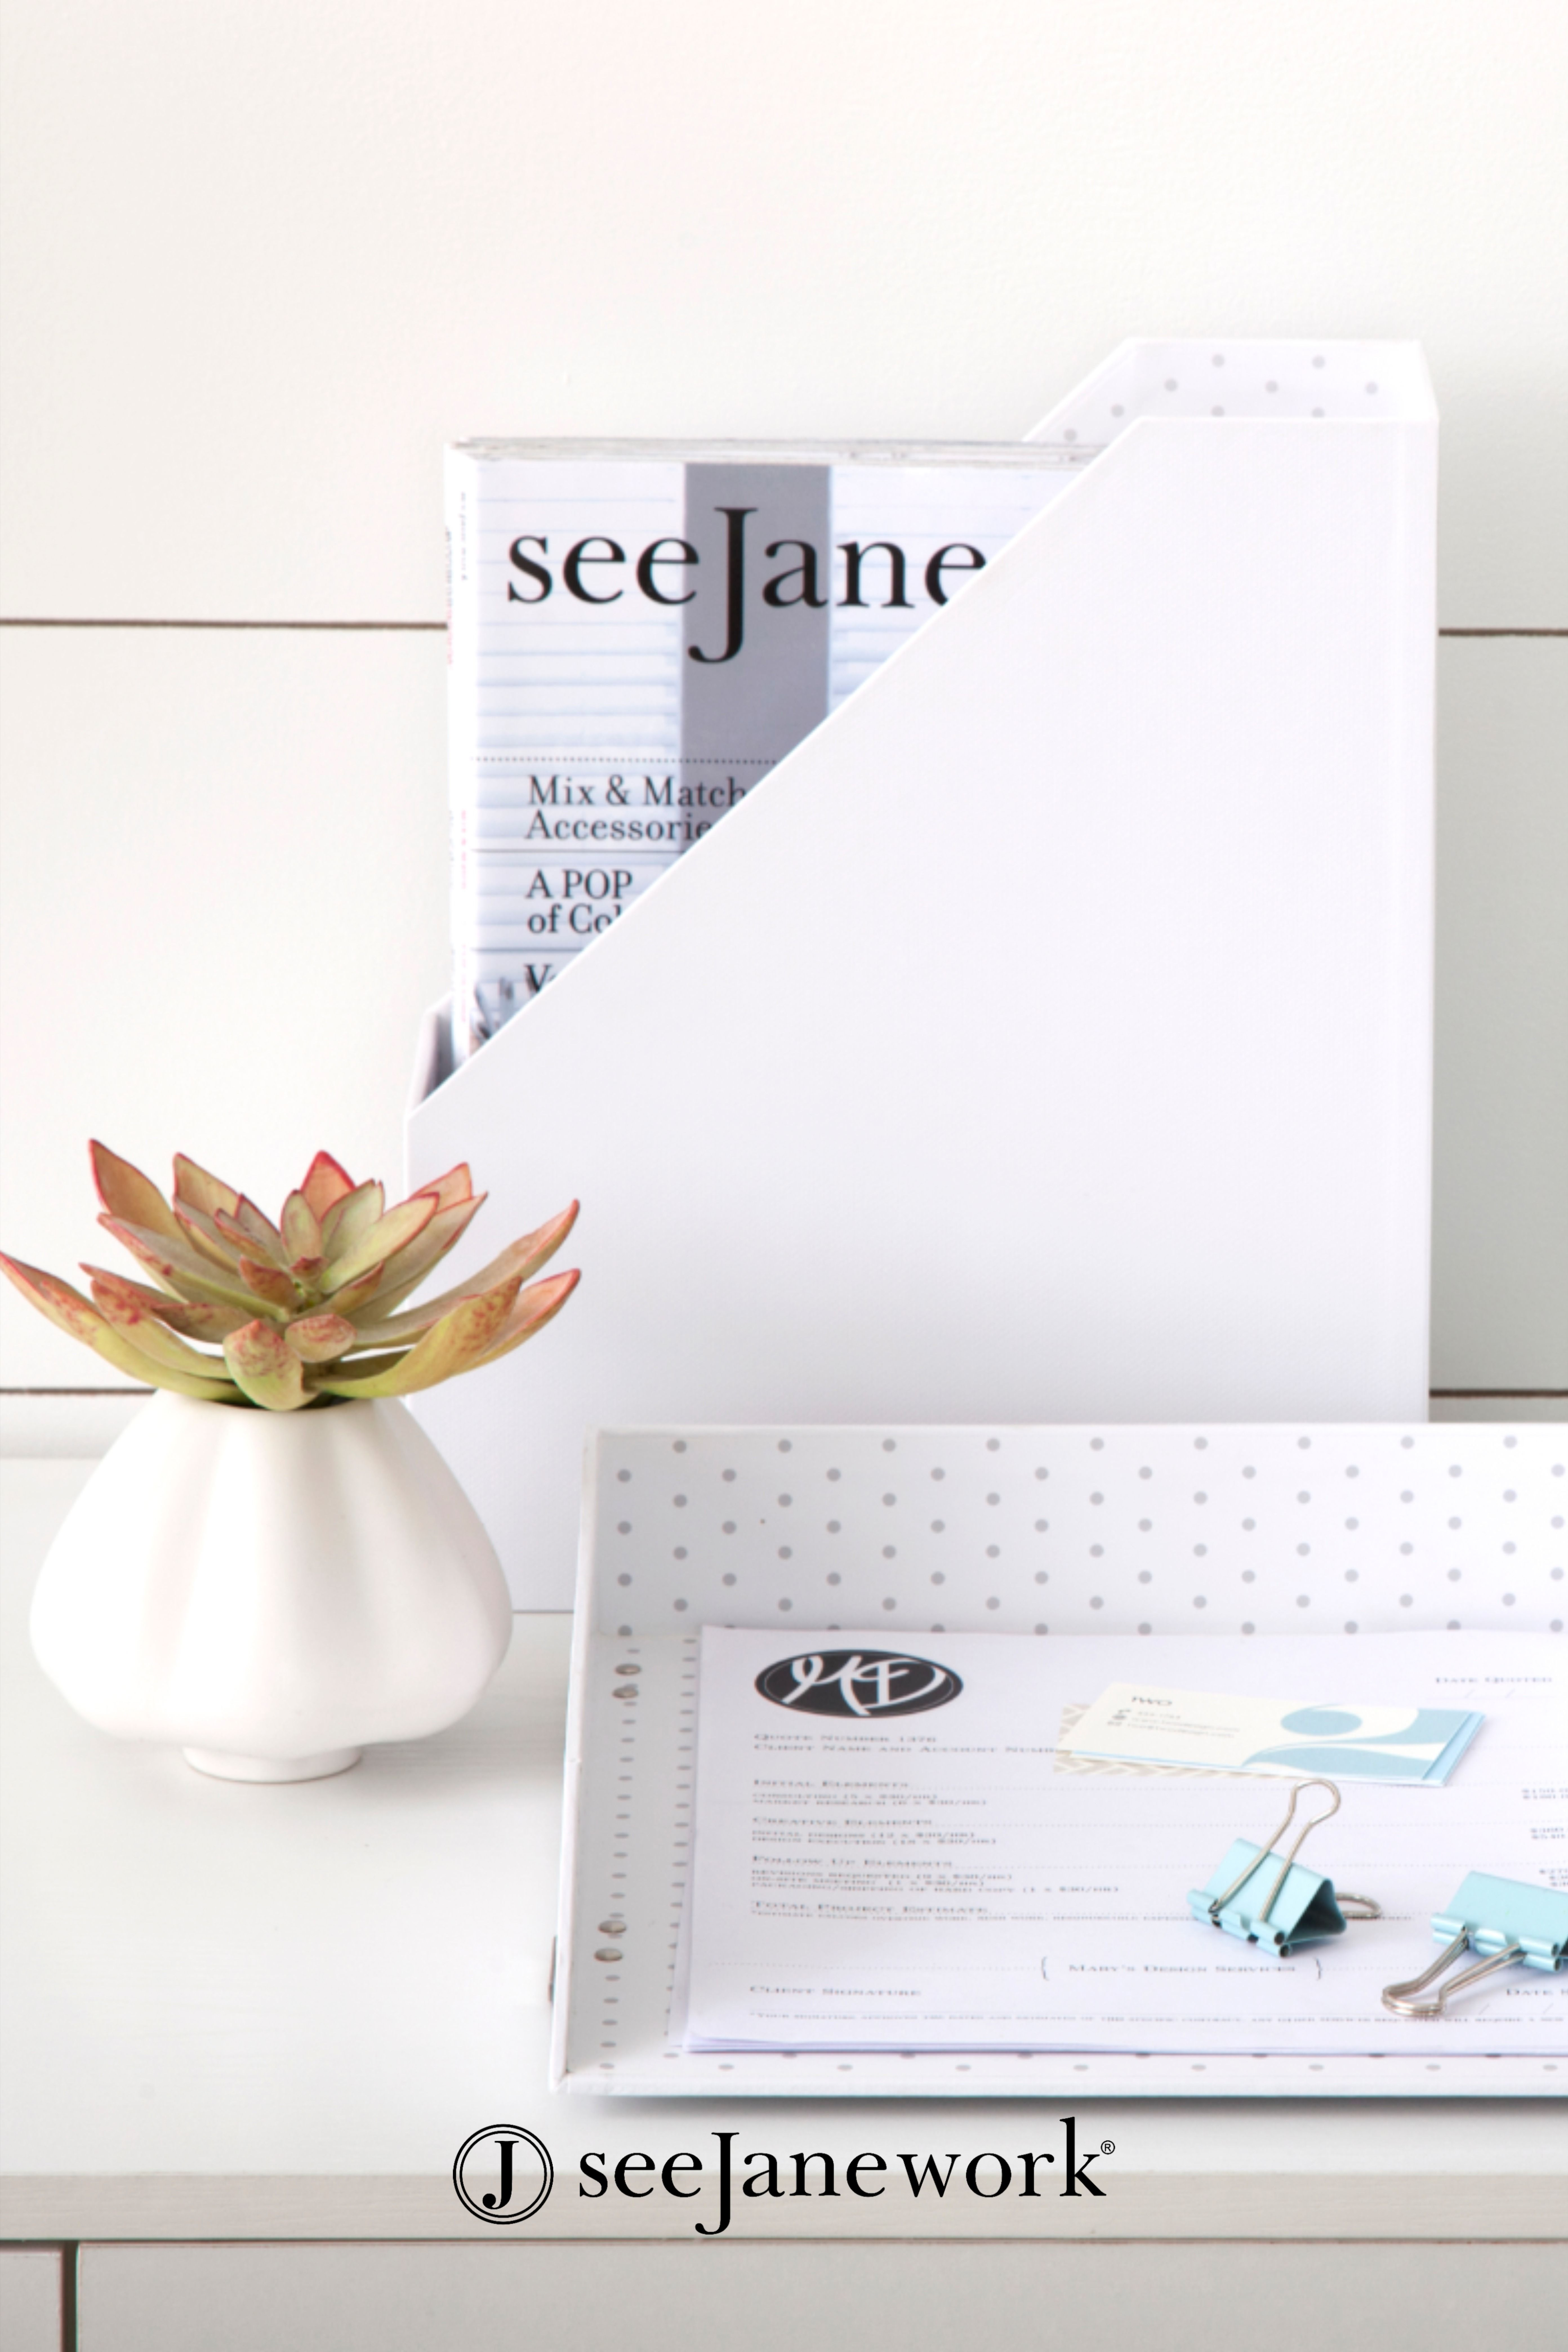 Seejanework: Classic Desk Accessories For Home Or Office In 2020